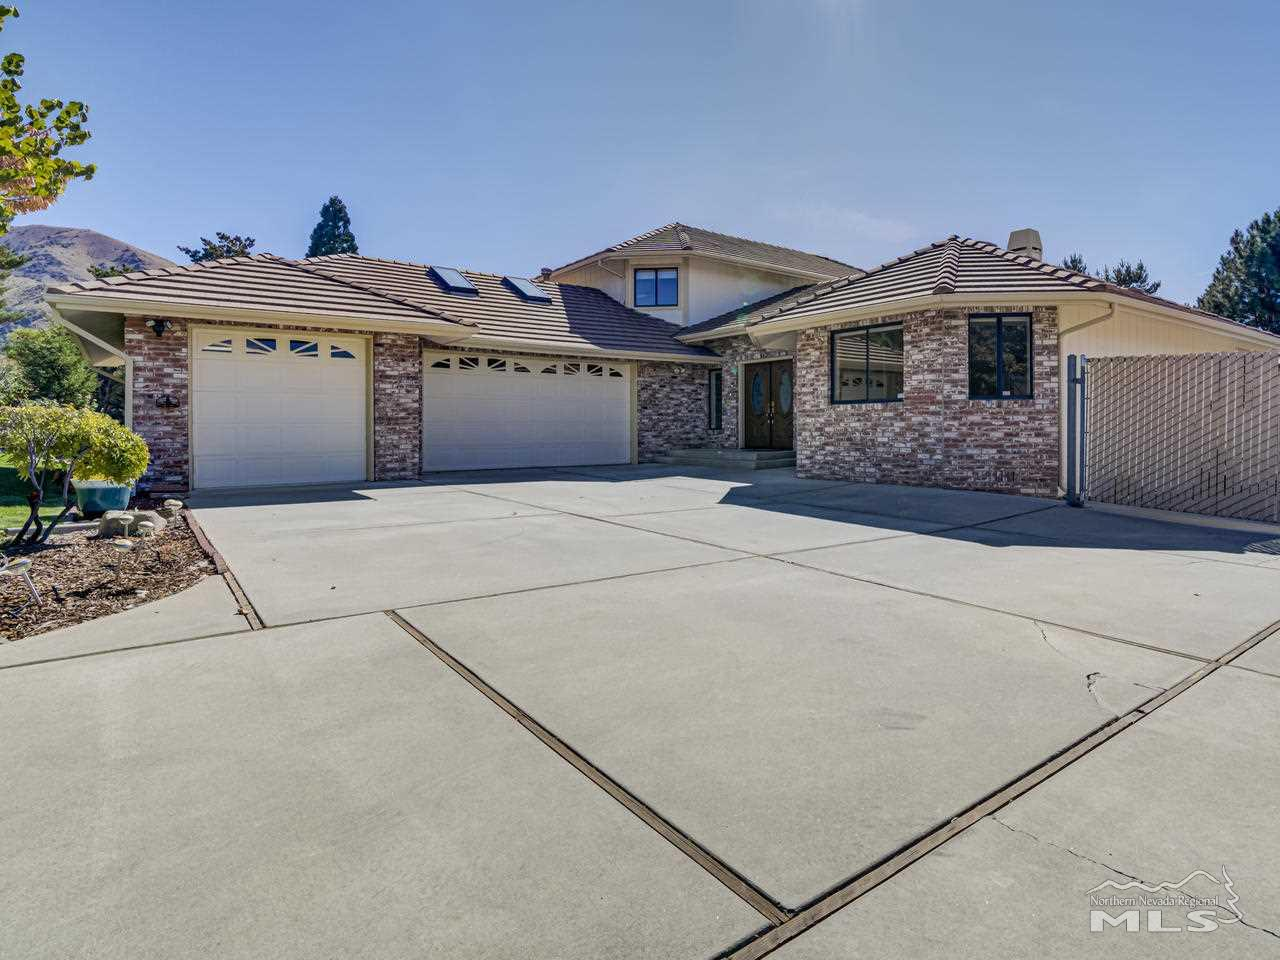 Image for 5595 S Scarsdale Cir, Reno, NV 89502-9606